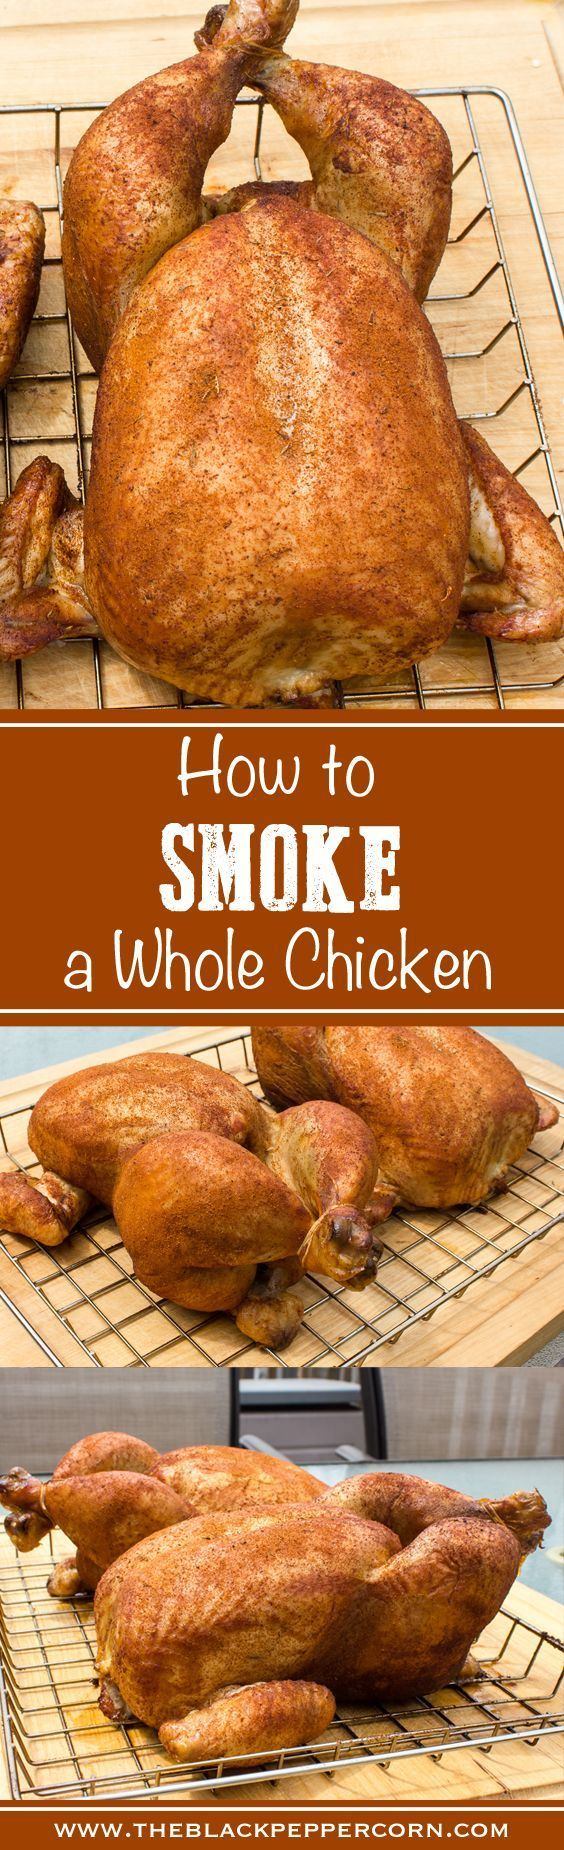 How to Smoke a Whole Chicken - Step by step instructions for smoking a whole chicken with final internal temperature of 165F. Great for electric smokers, pellet, grill and more. Bradley, traeger, Masterbuilt, Cookshack and other smokers result in amazing chicken!